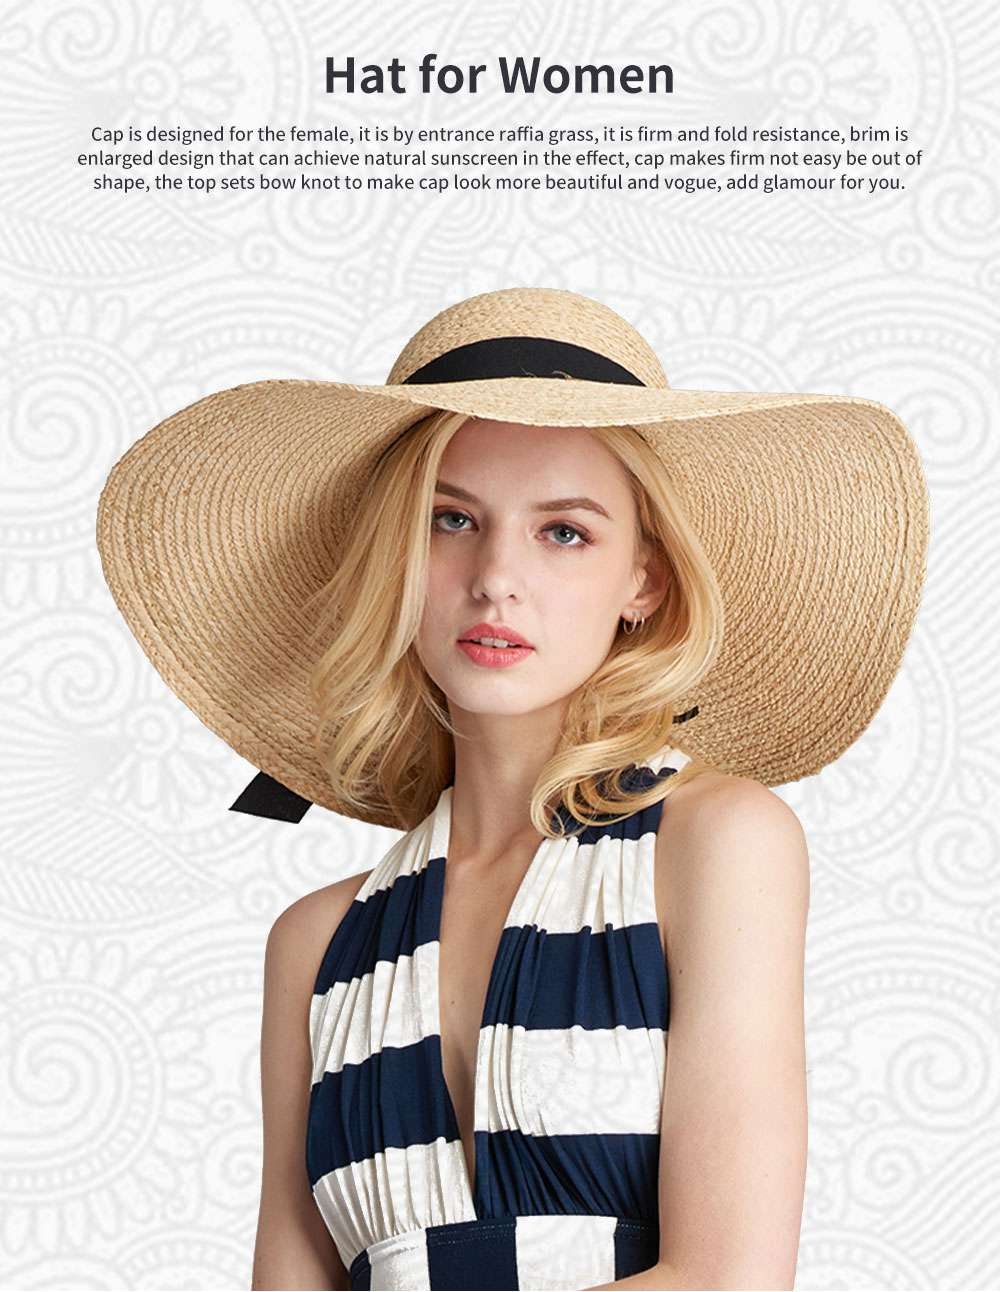 Lightweight Raffia Hat Breathable Topper Fashionable Bow Knot Sunhat Sunscreen for Women Beach Outside Activities Cap 0